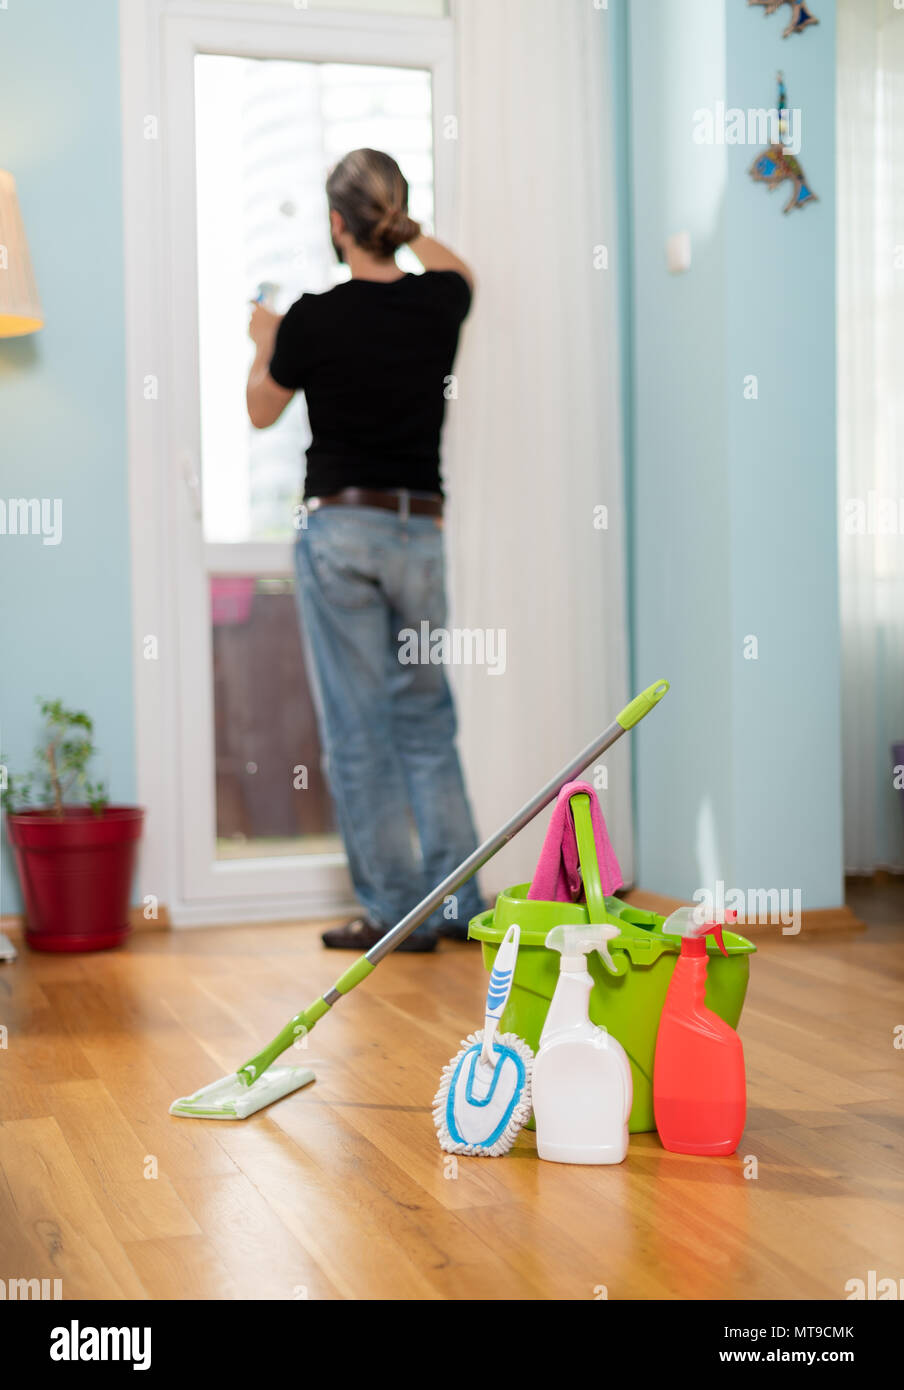 House cleaning, house cleaning man, house man sweeping and mopping - Stock Image